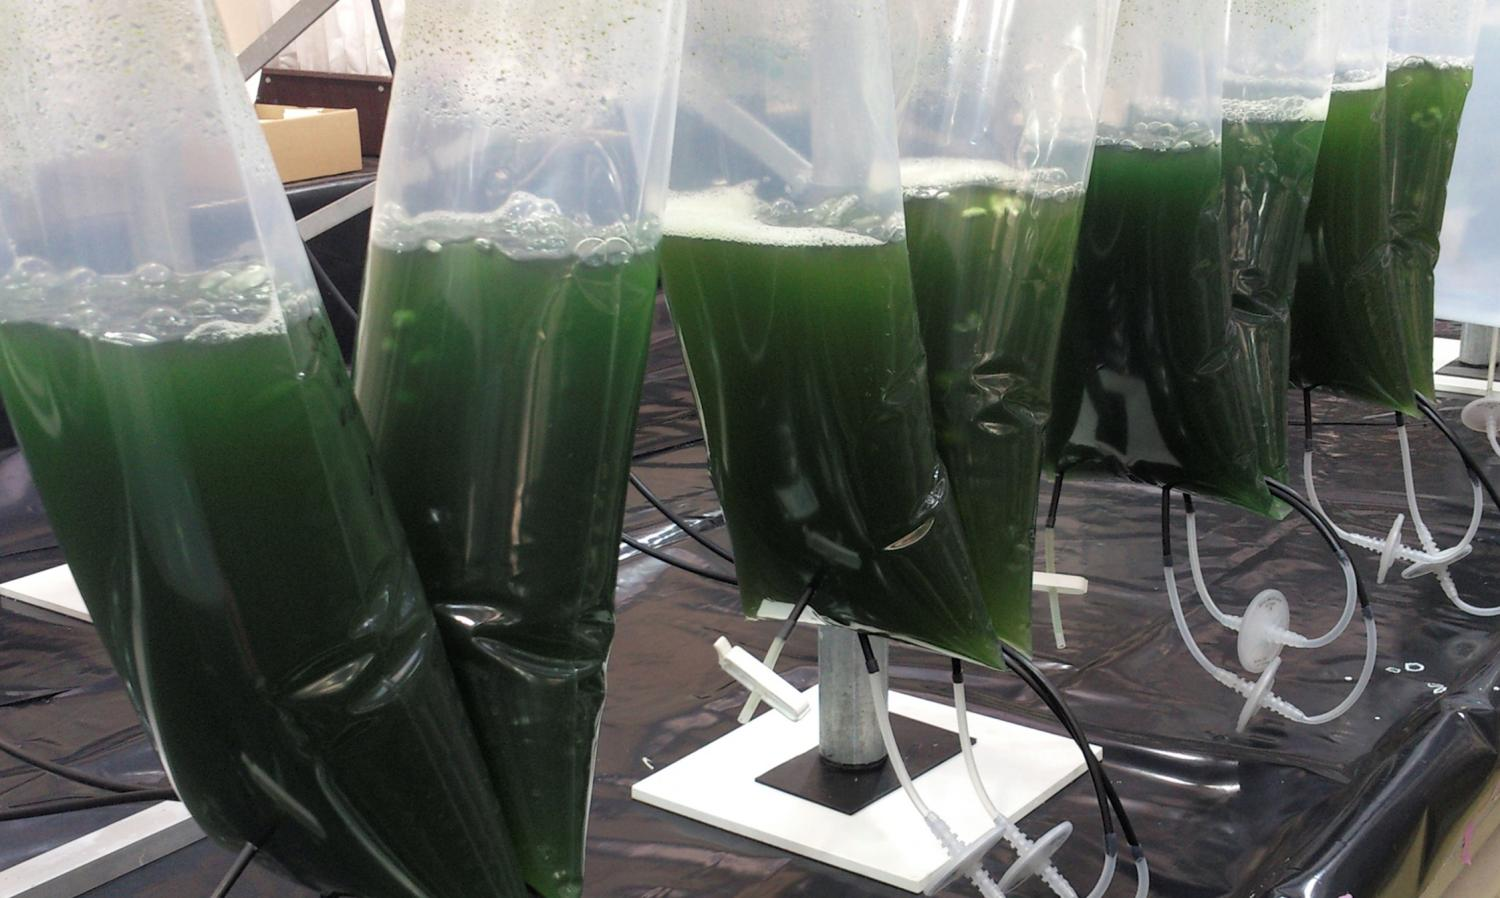 Modified Microalgae Converts Sunlight Into Valuable Medicine